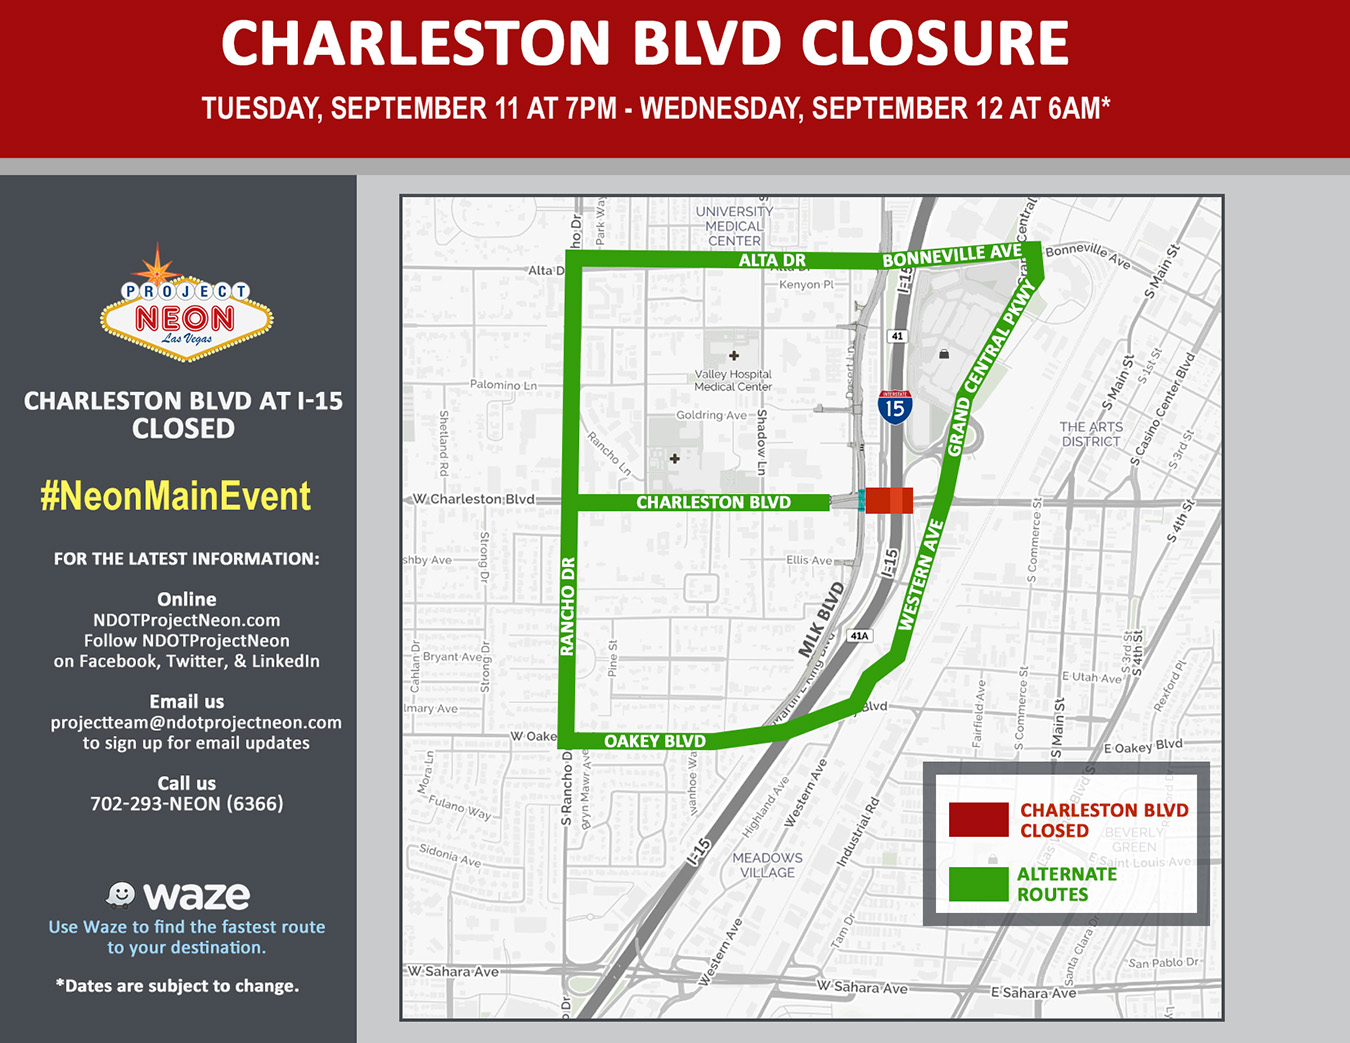 Charleston Full Closure_9.11.18